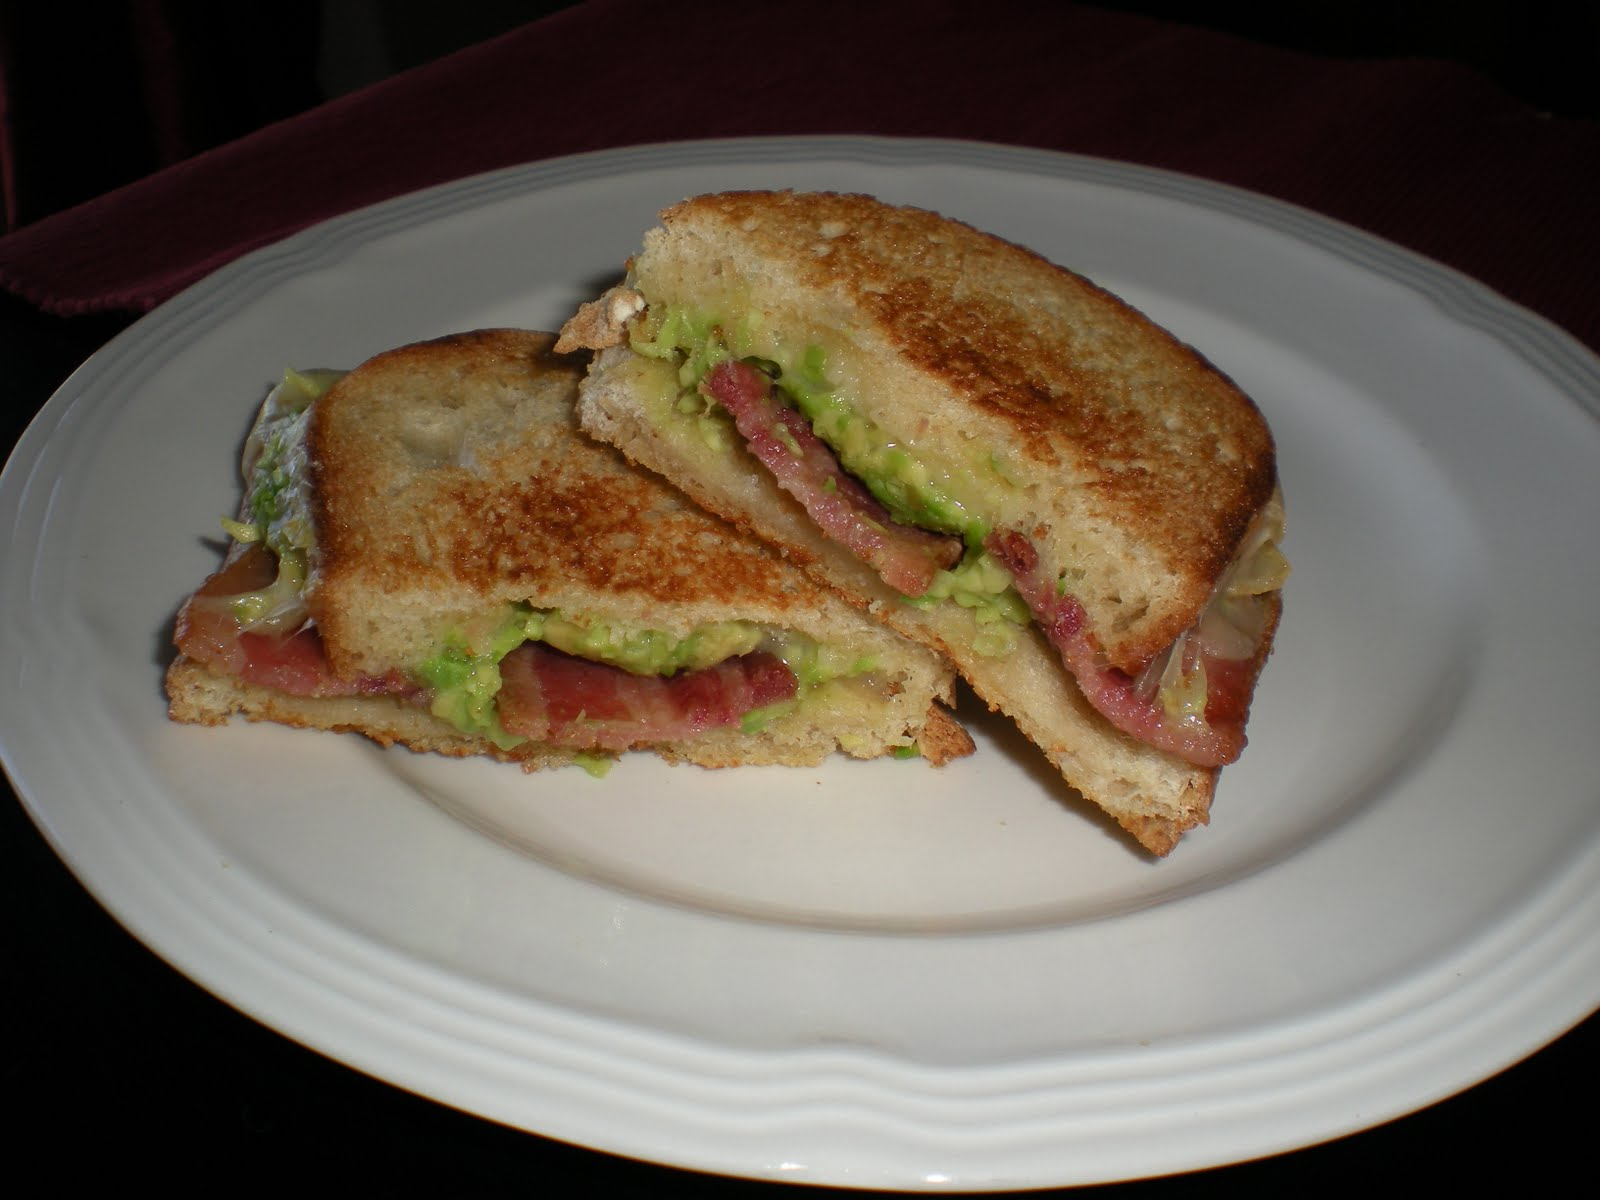 ... !: Grilled Cheese Sandwich with Bacon & Avocado & Pepper Jack Cheese